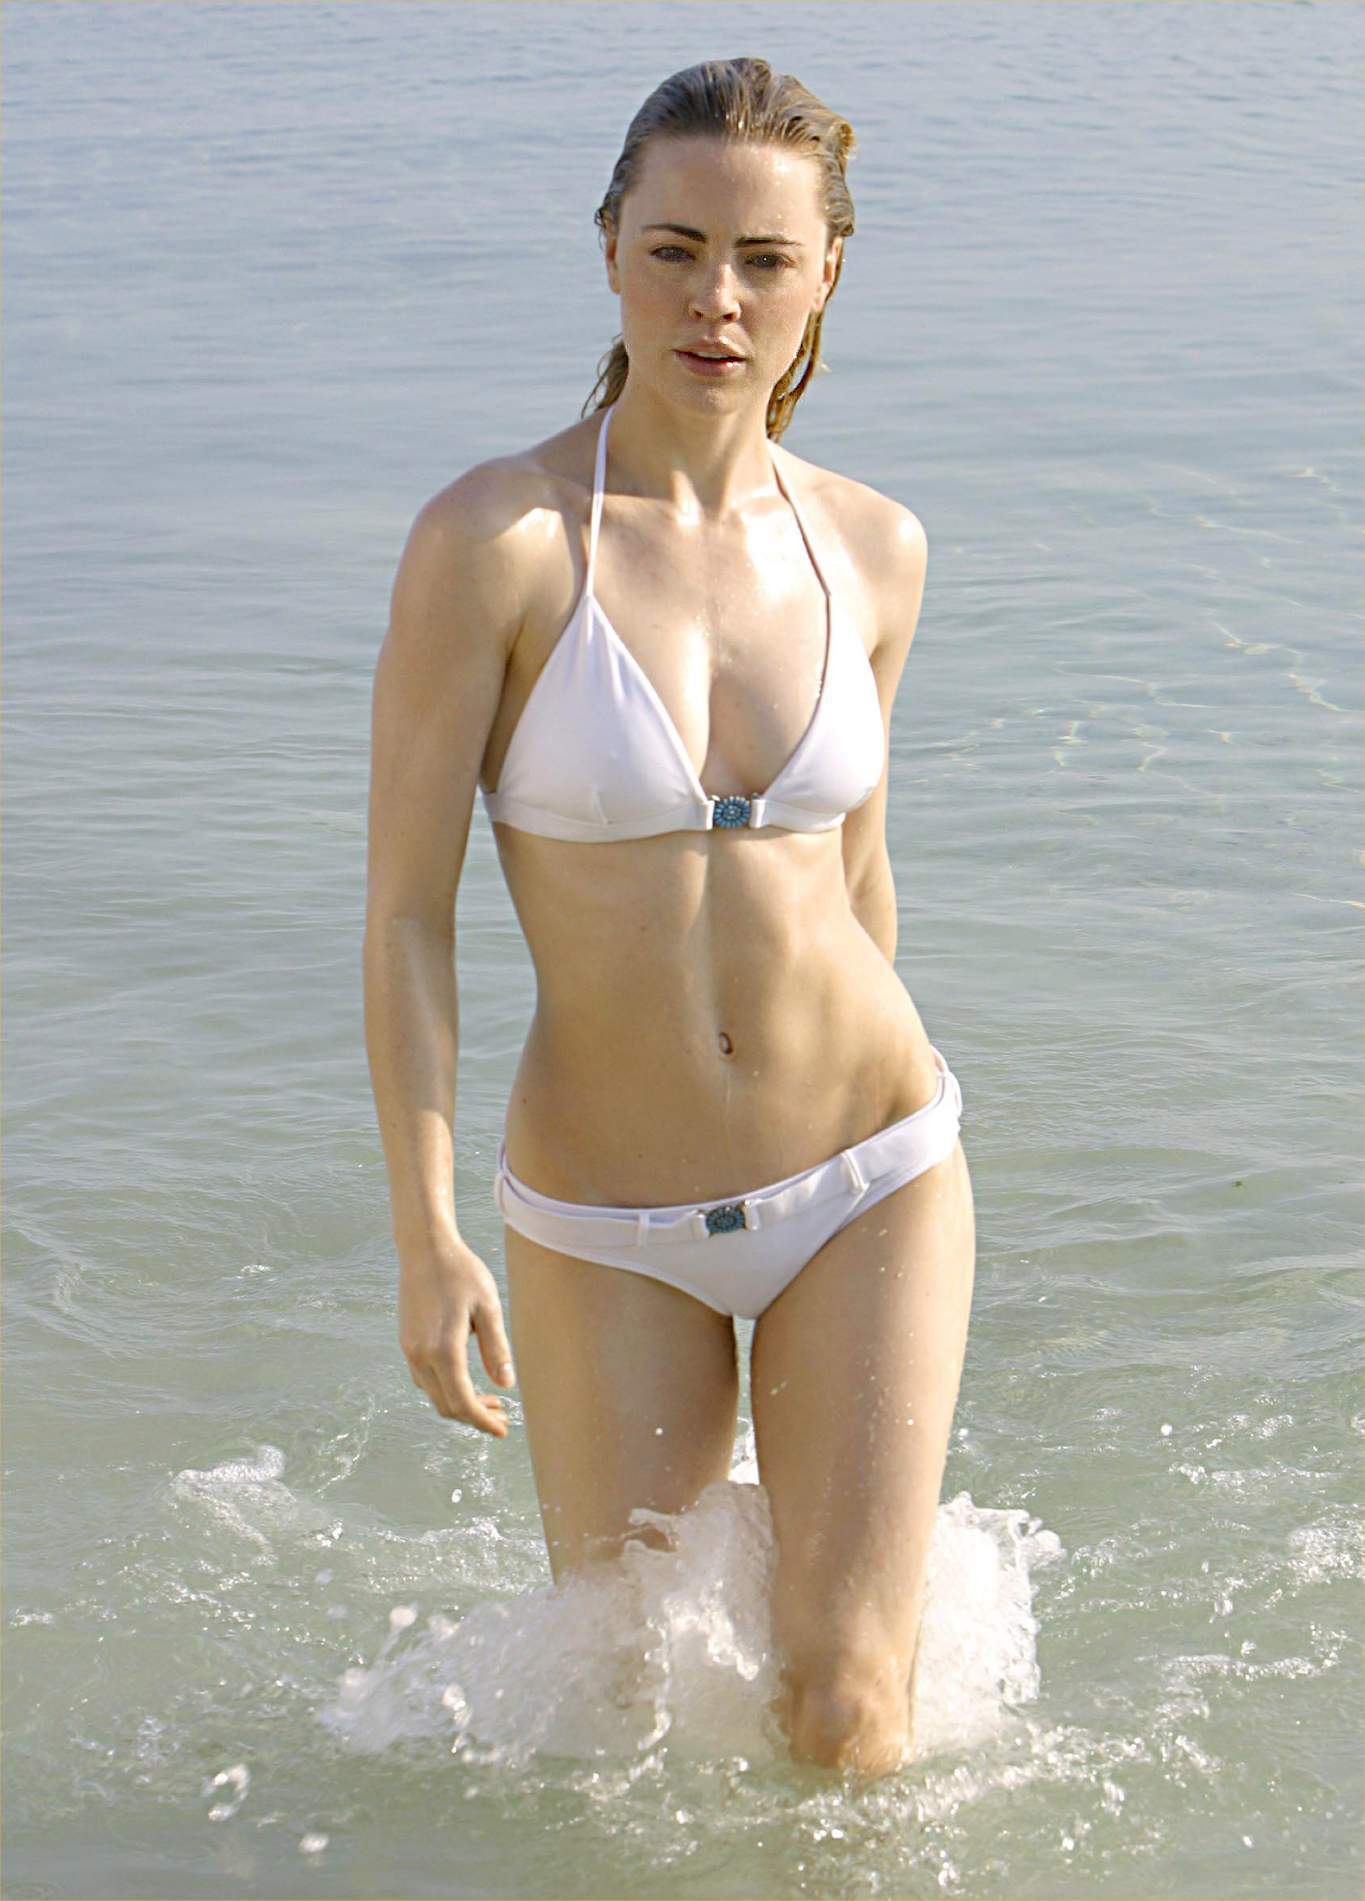 Pics Melissa George nudes (62 foto and video), Topless, Bikini, Selfie, braless 2006